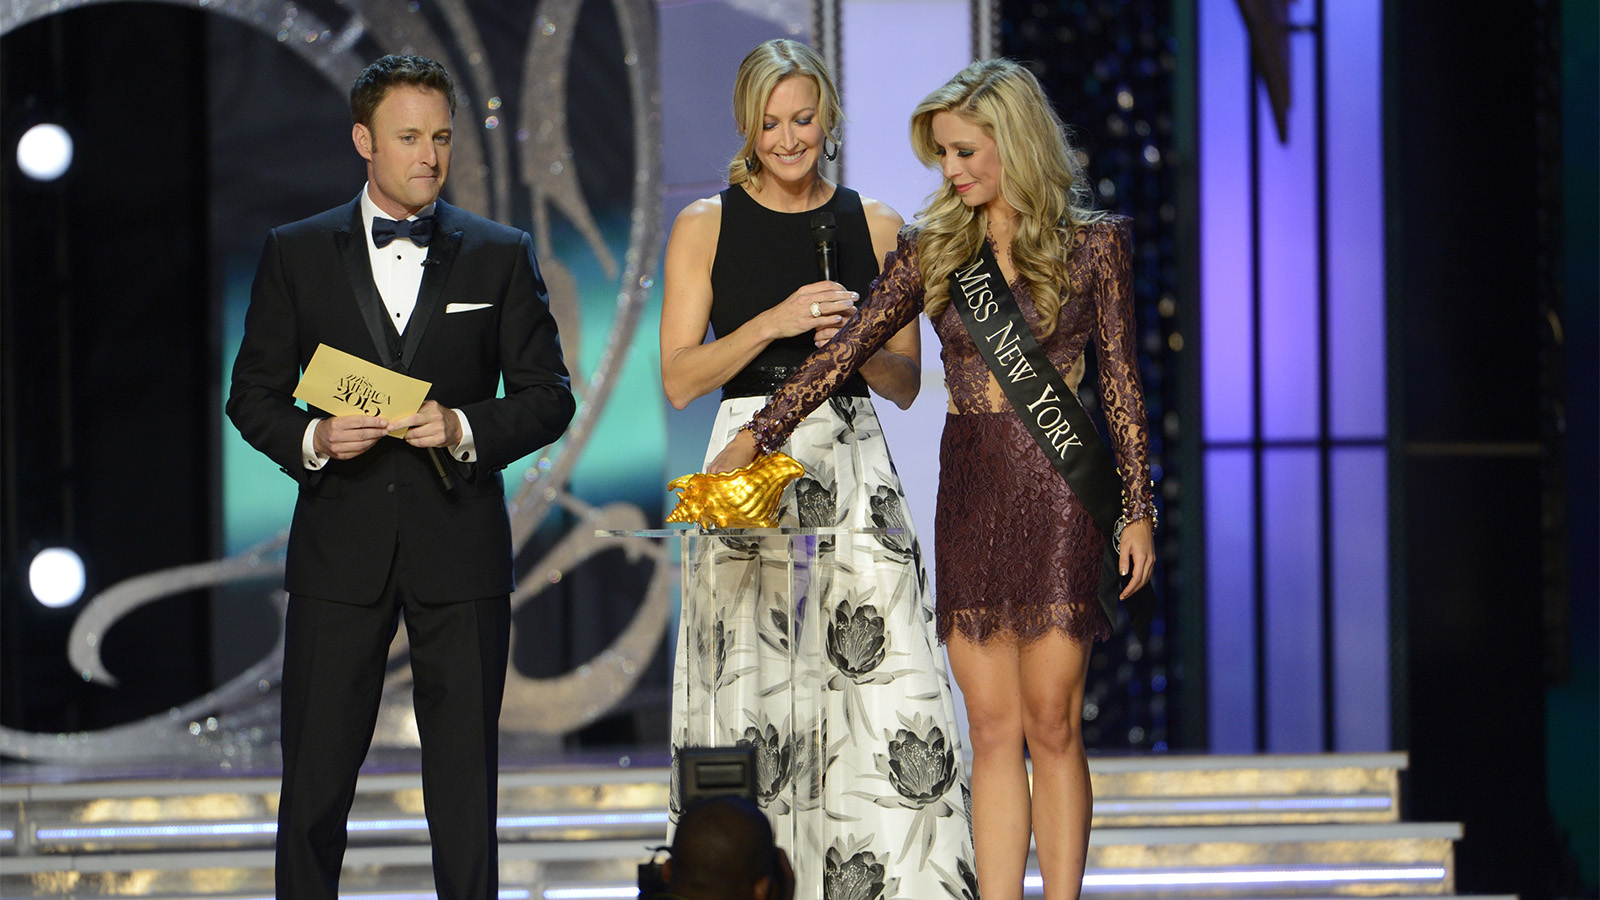 Hosts Chris Harrison, from left, and Lara Spencer with winner Miss New York Kira Kazantsev during the Miss America 2015 pageant on Sept. 14, 2014. Photo by Ida Mae Astute, courtesy of ABC